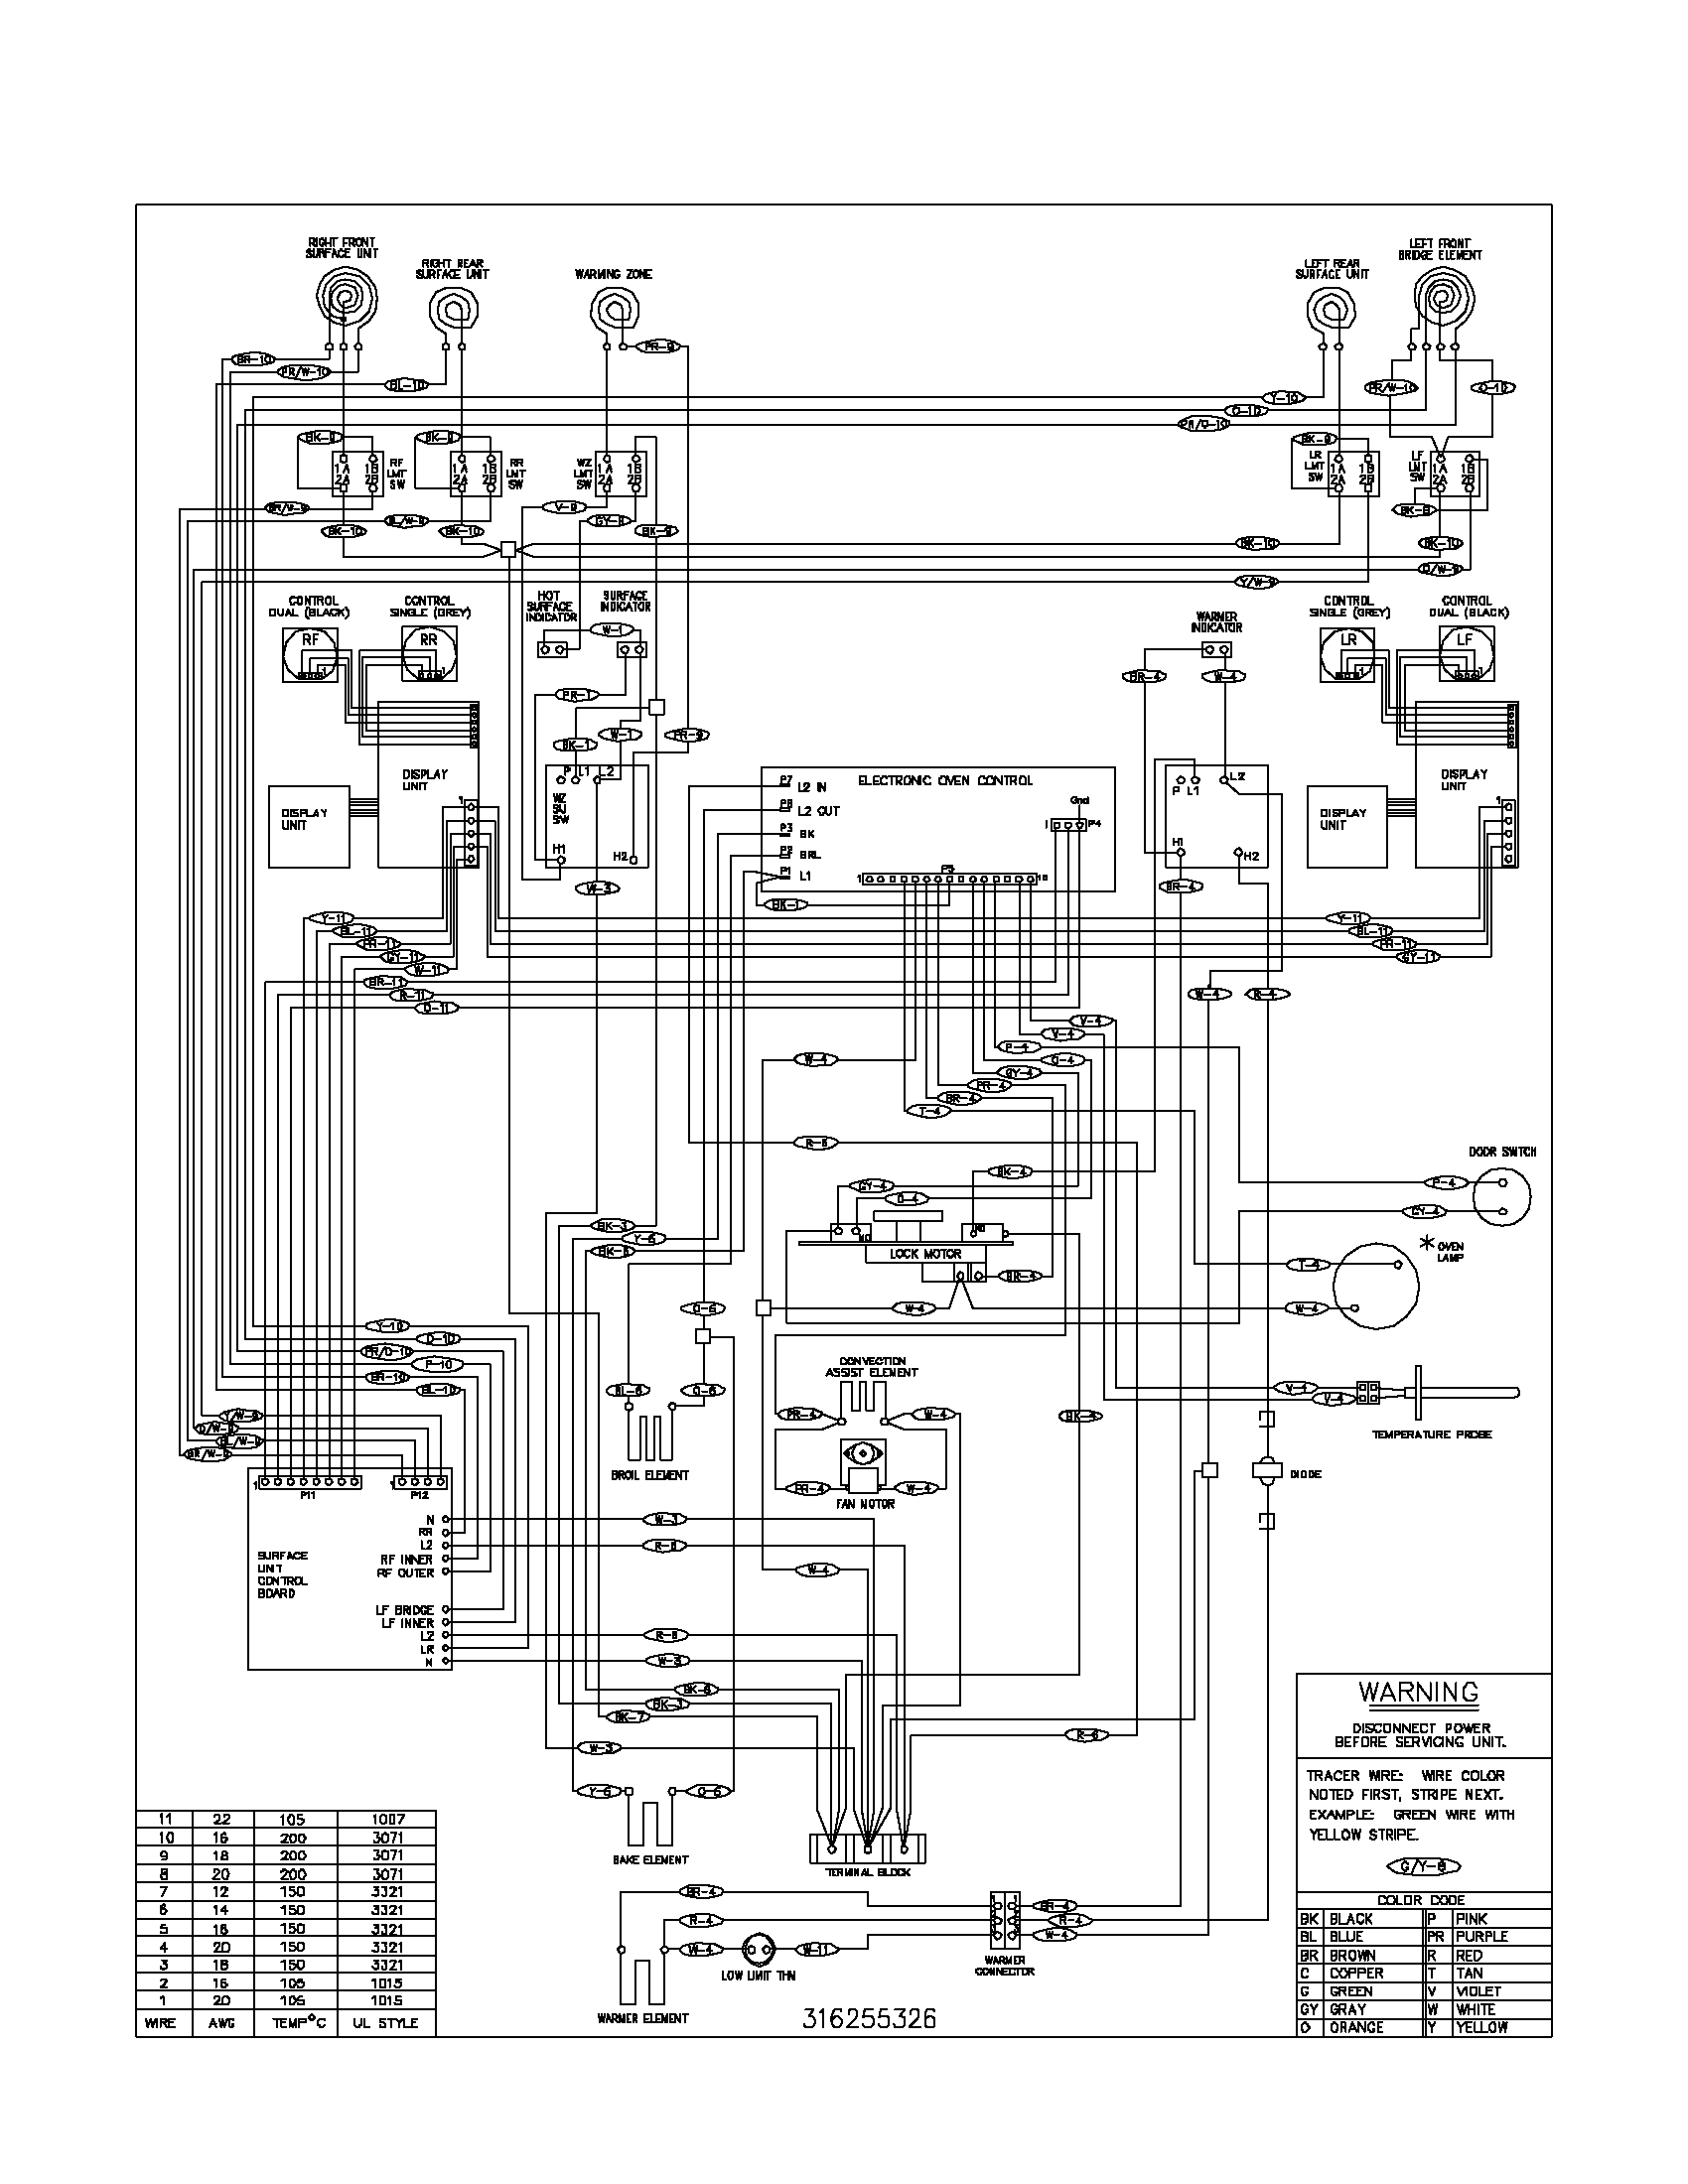 plef398ccc electric range wiring diagram parts diagram